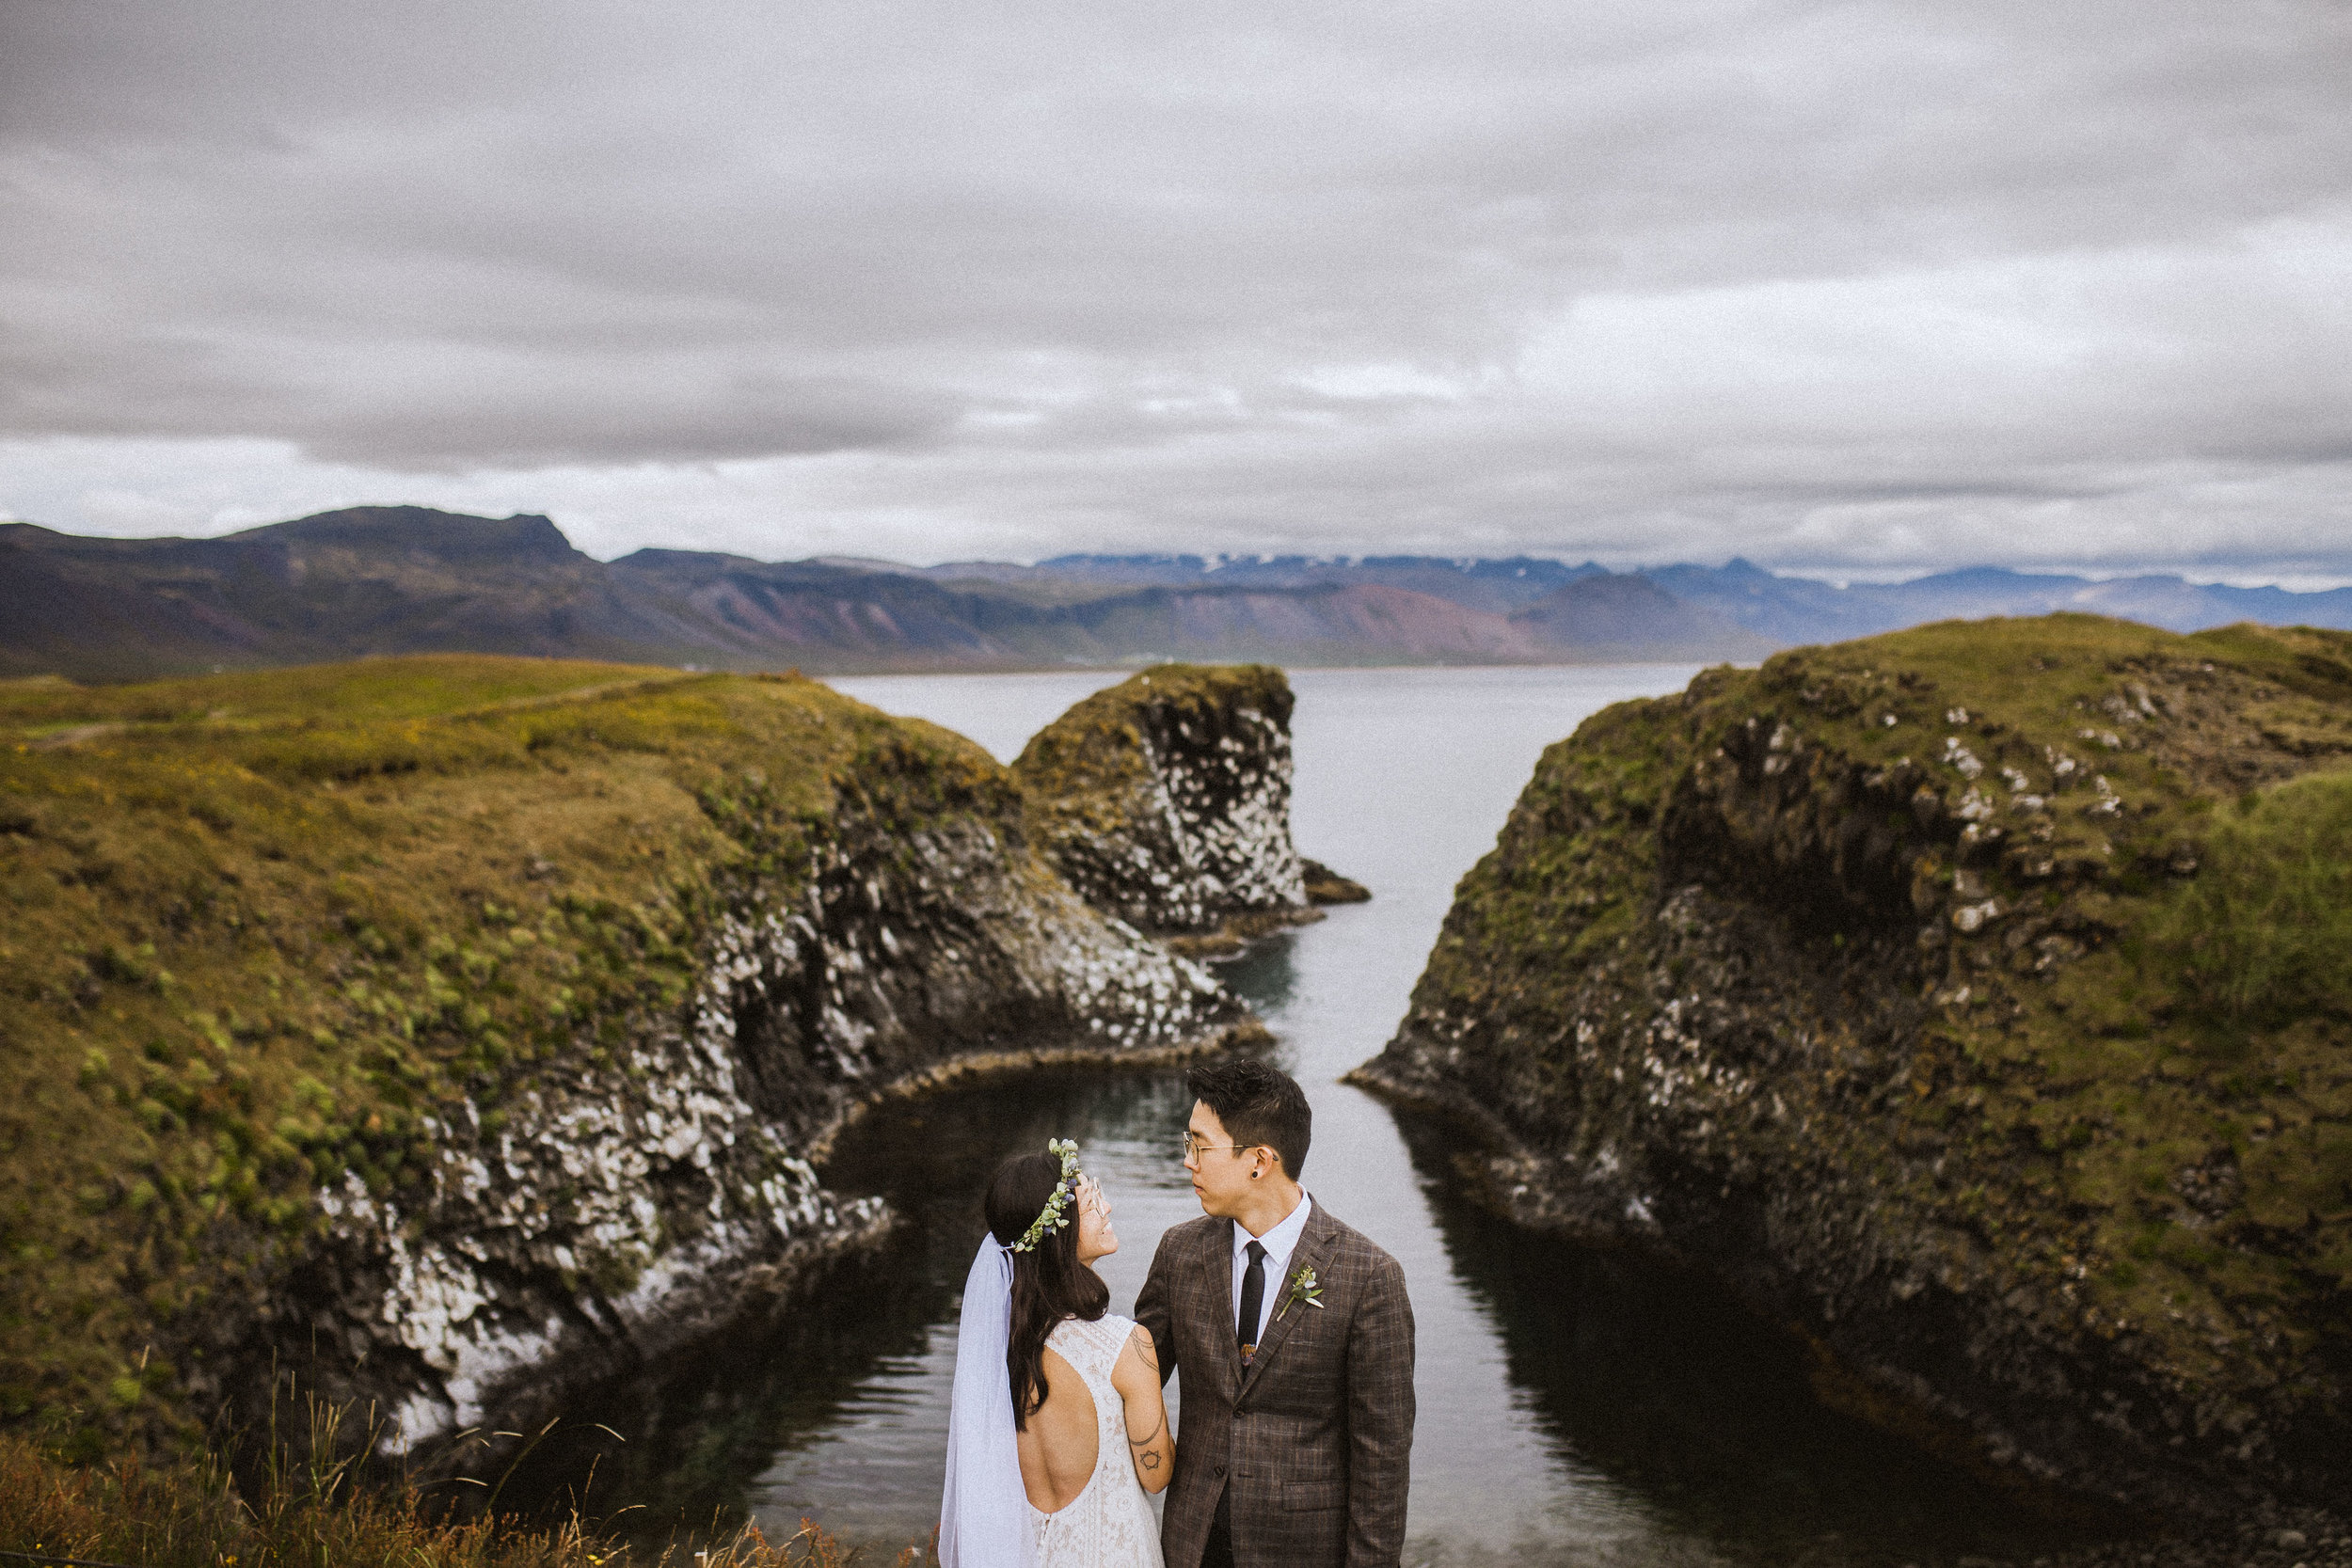 Best-wedding-photographer-in-iceland-kristin-maria125.jpg